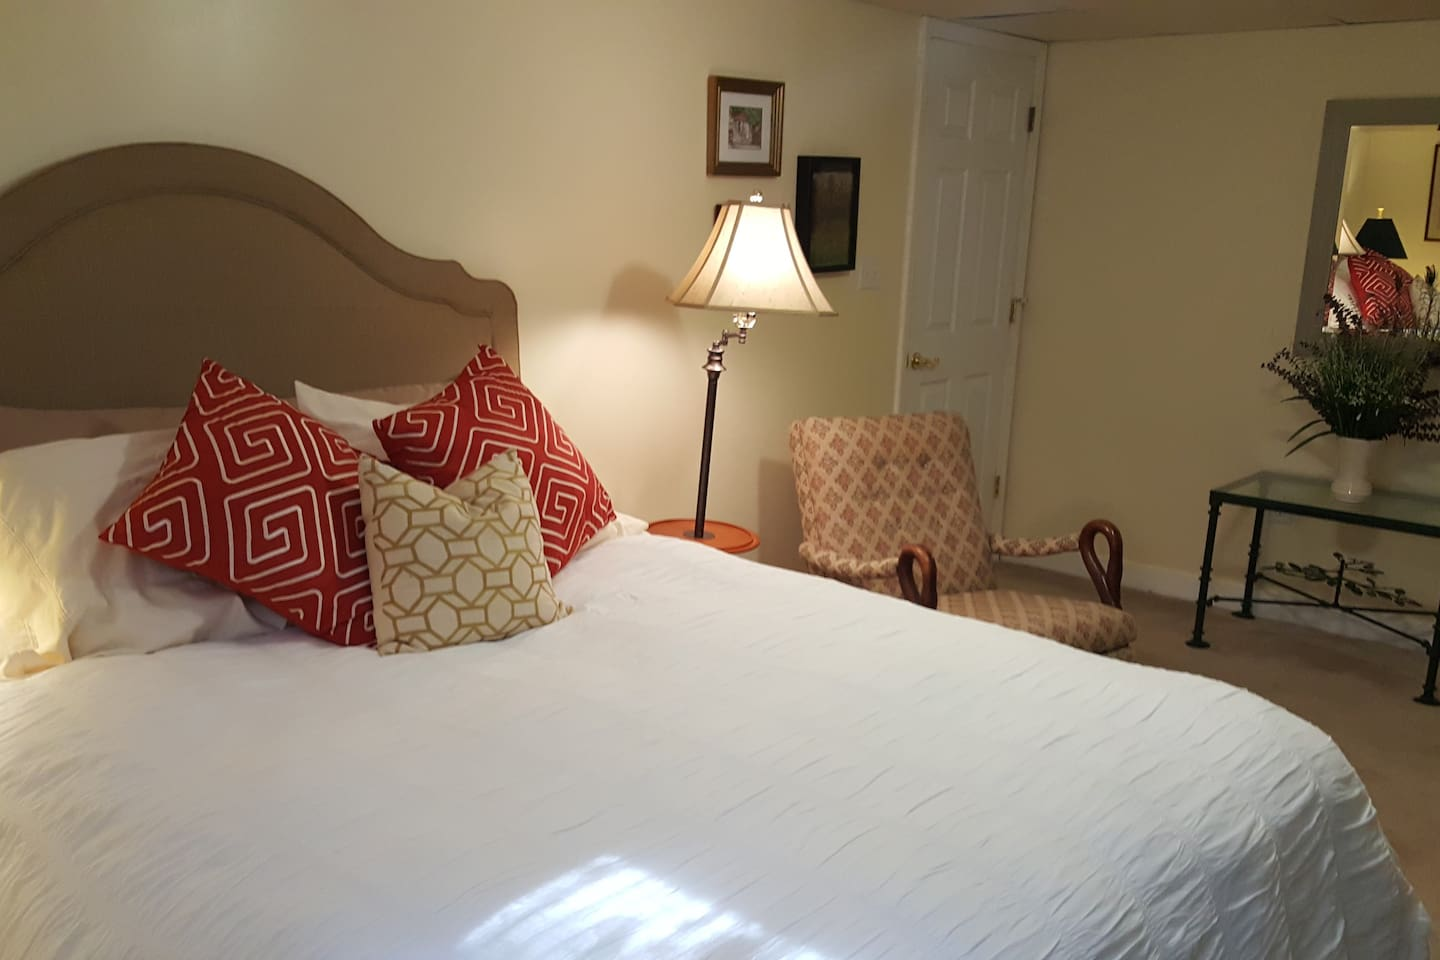 Private bedroom with super comfy queen bed, ample reading lights, and space to relax in complete privacy.